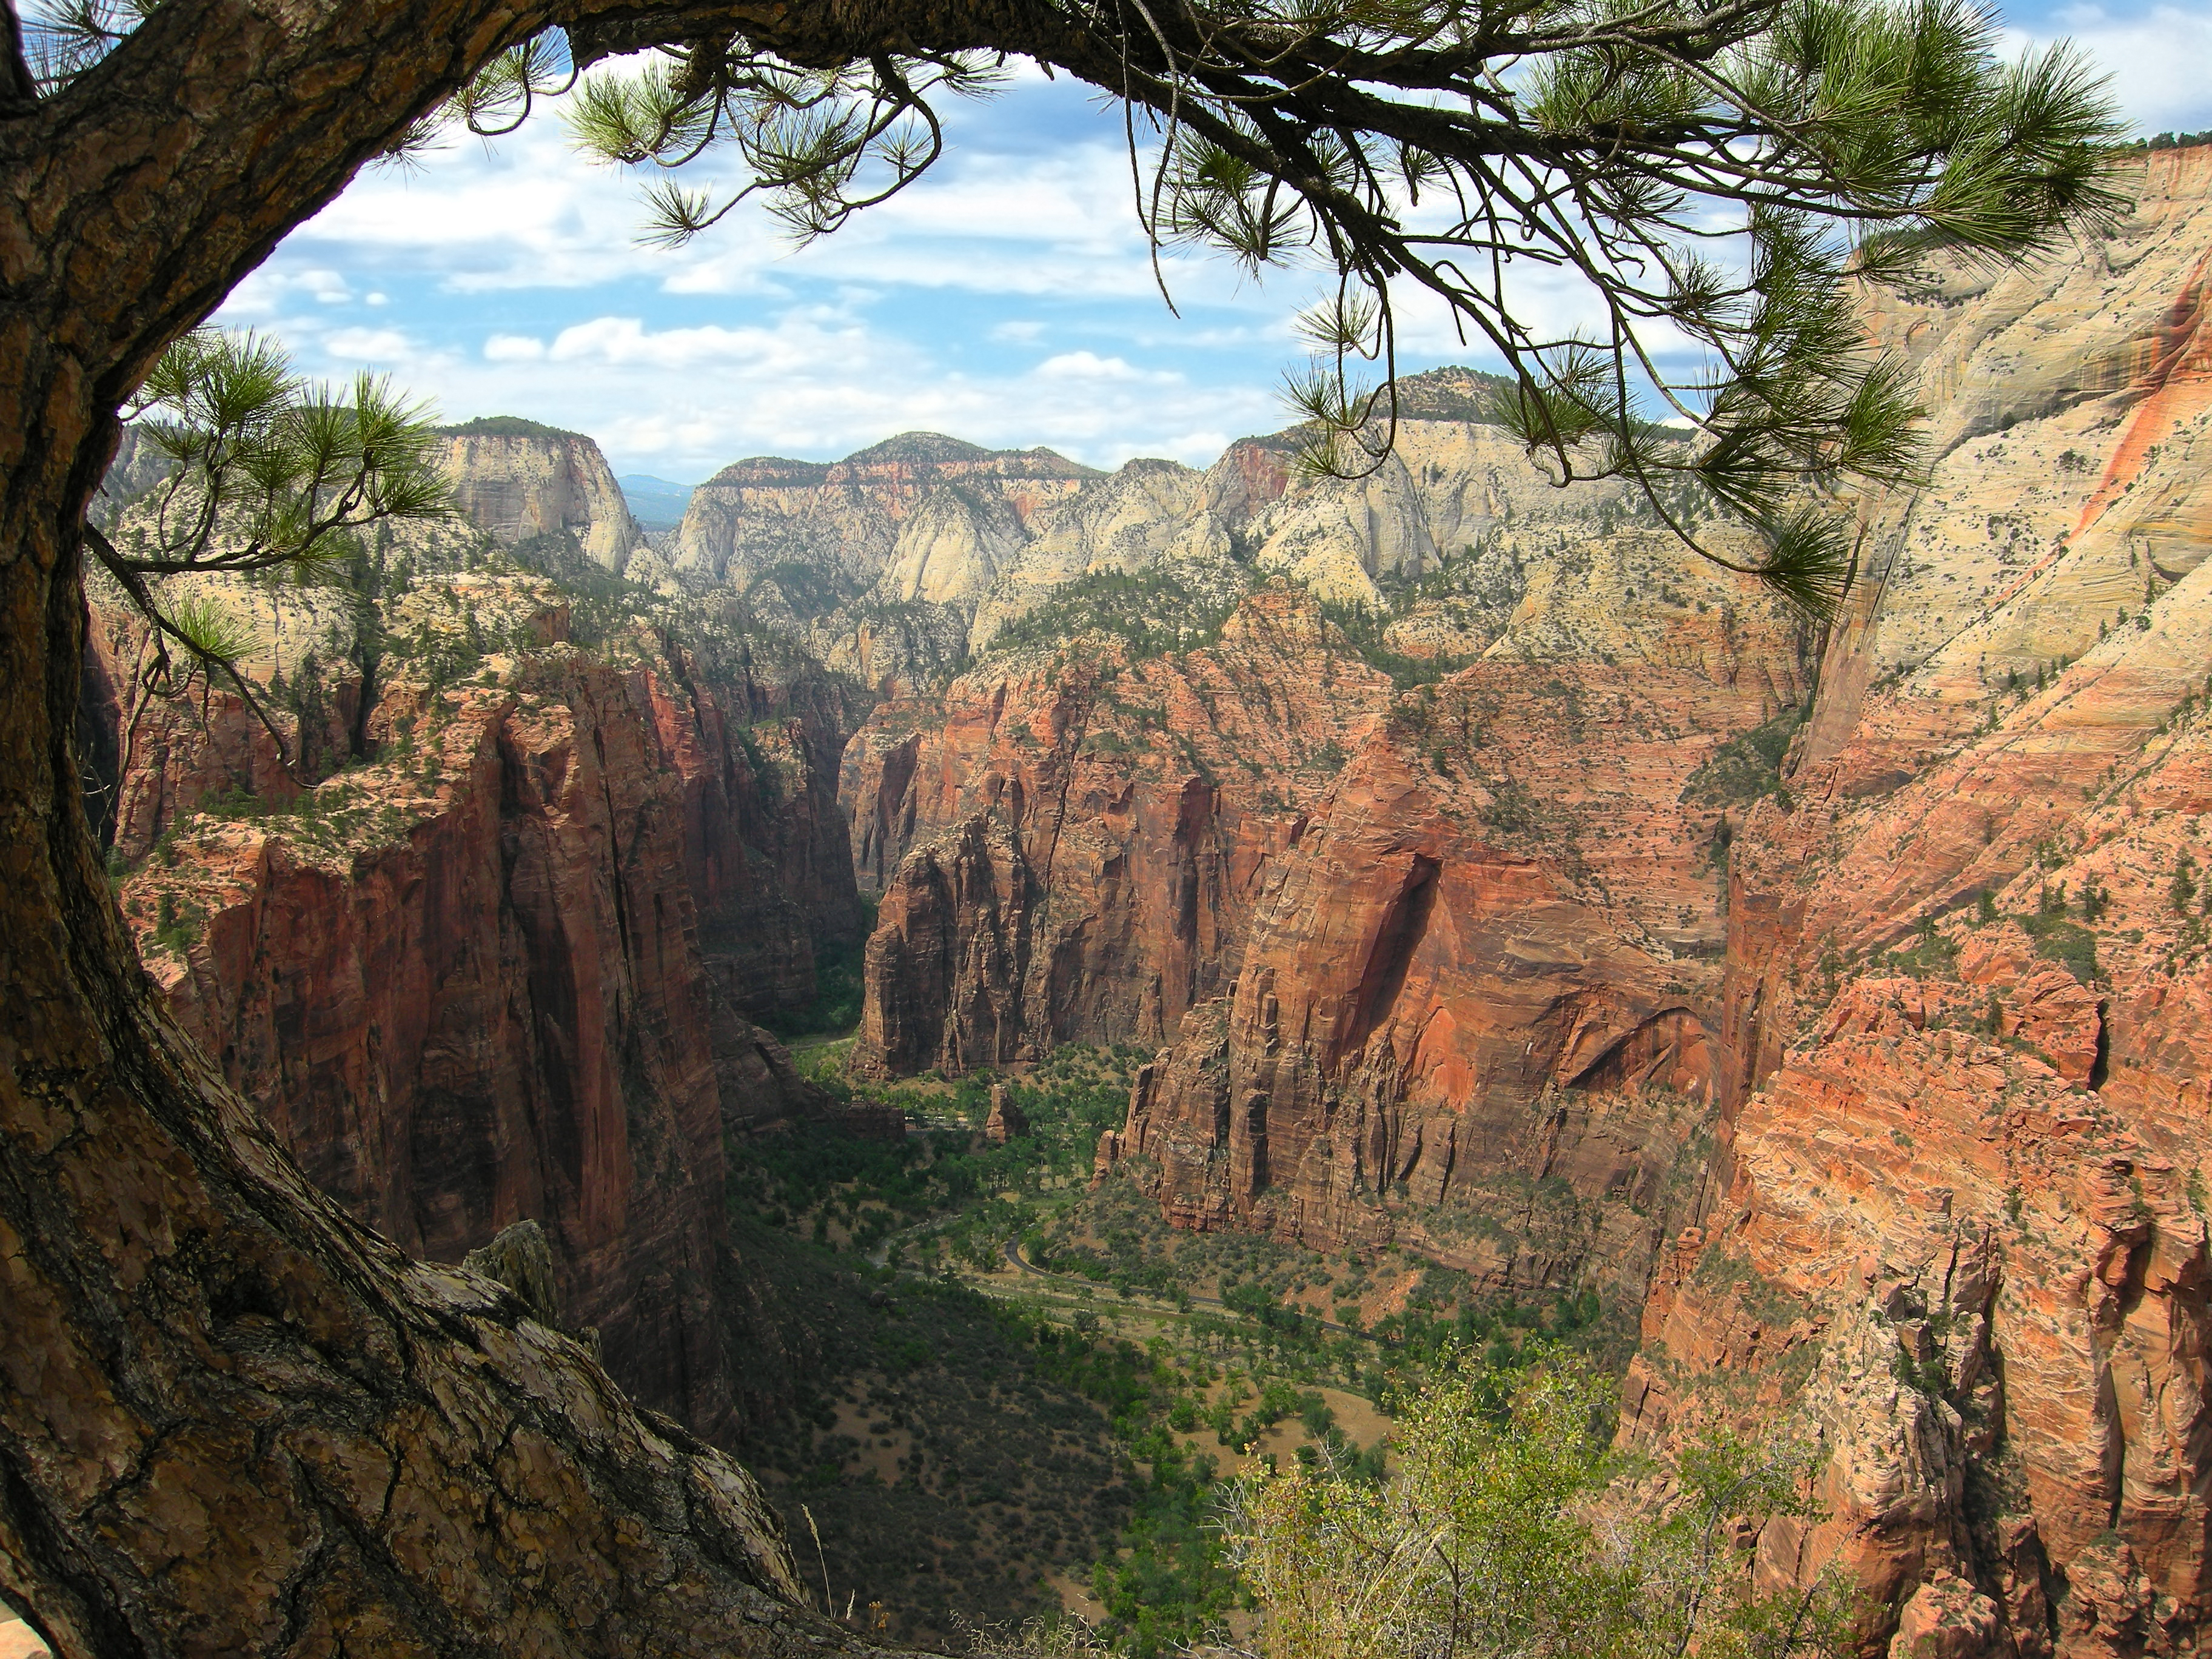 Majestic Zion National Park Angels Landing The Subway Cliffs  Canyons 45 PICS